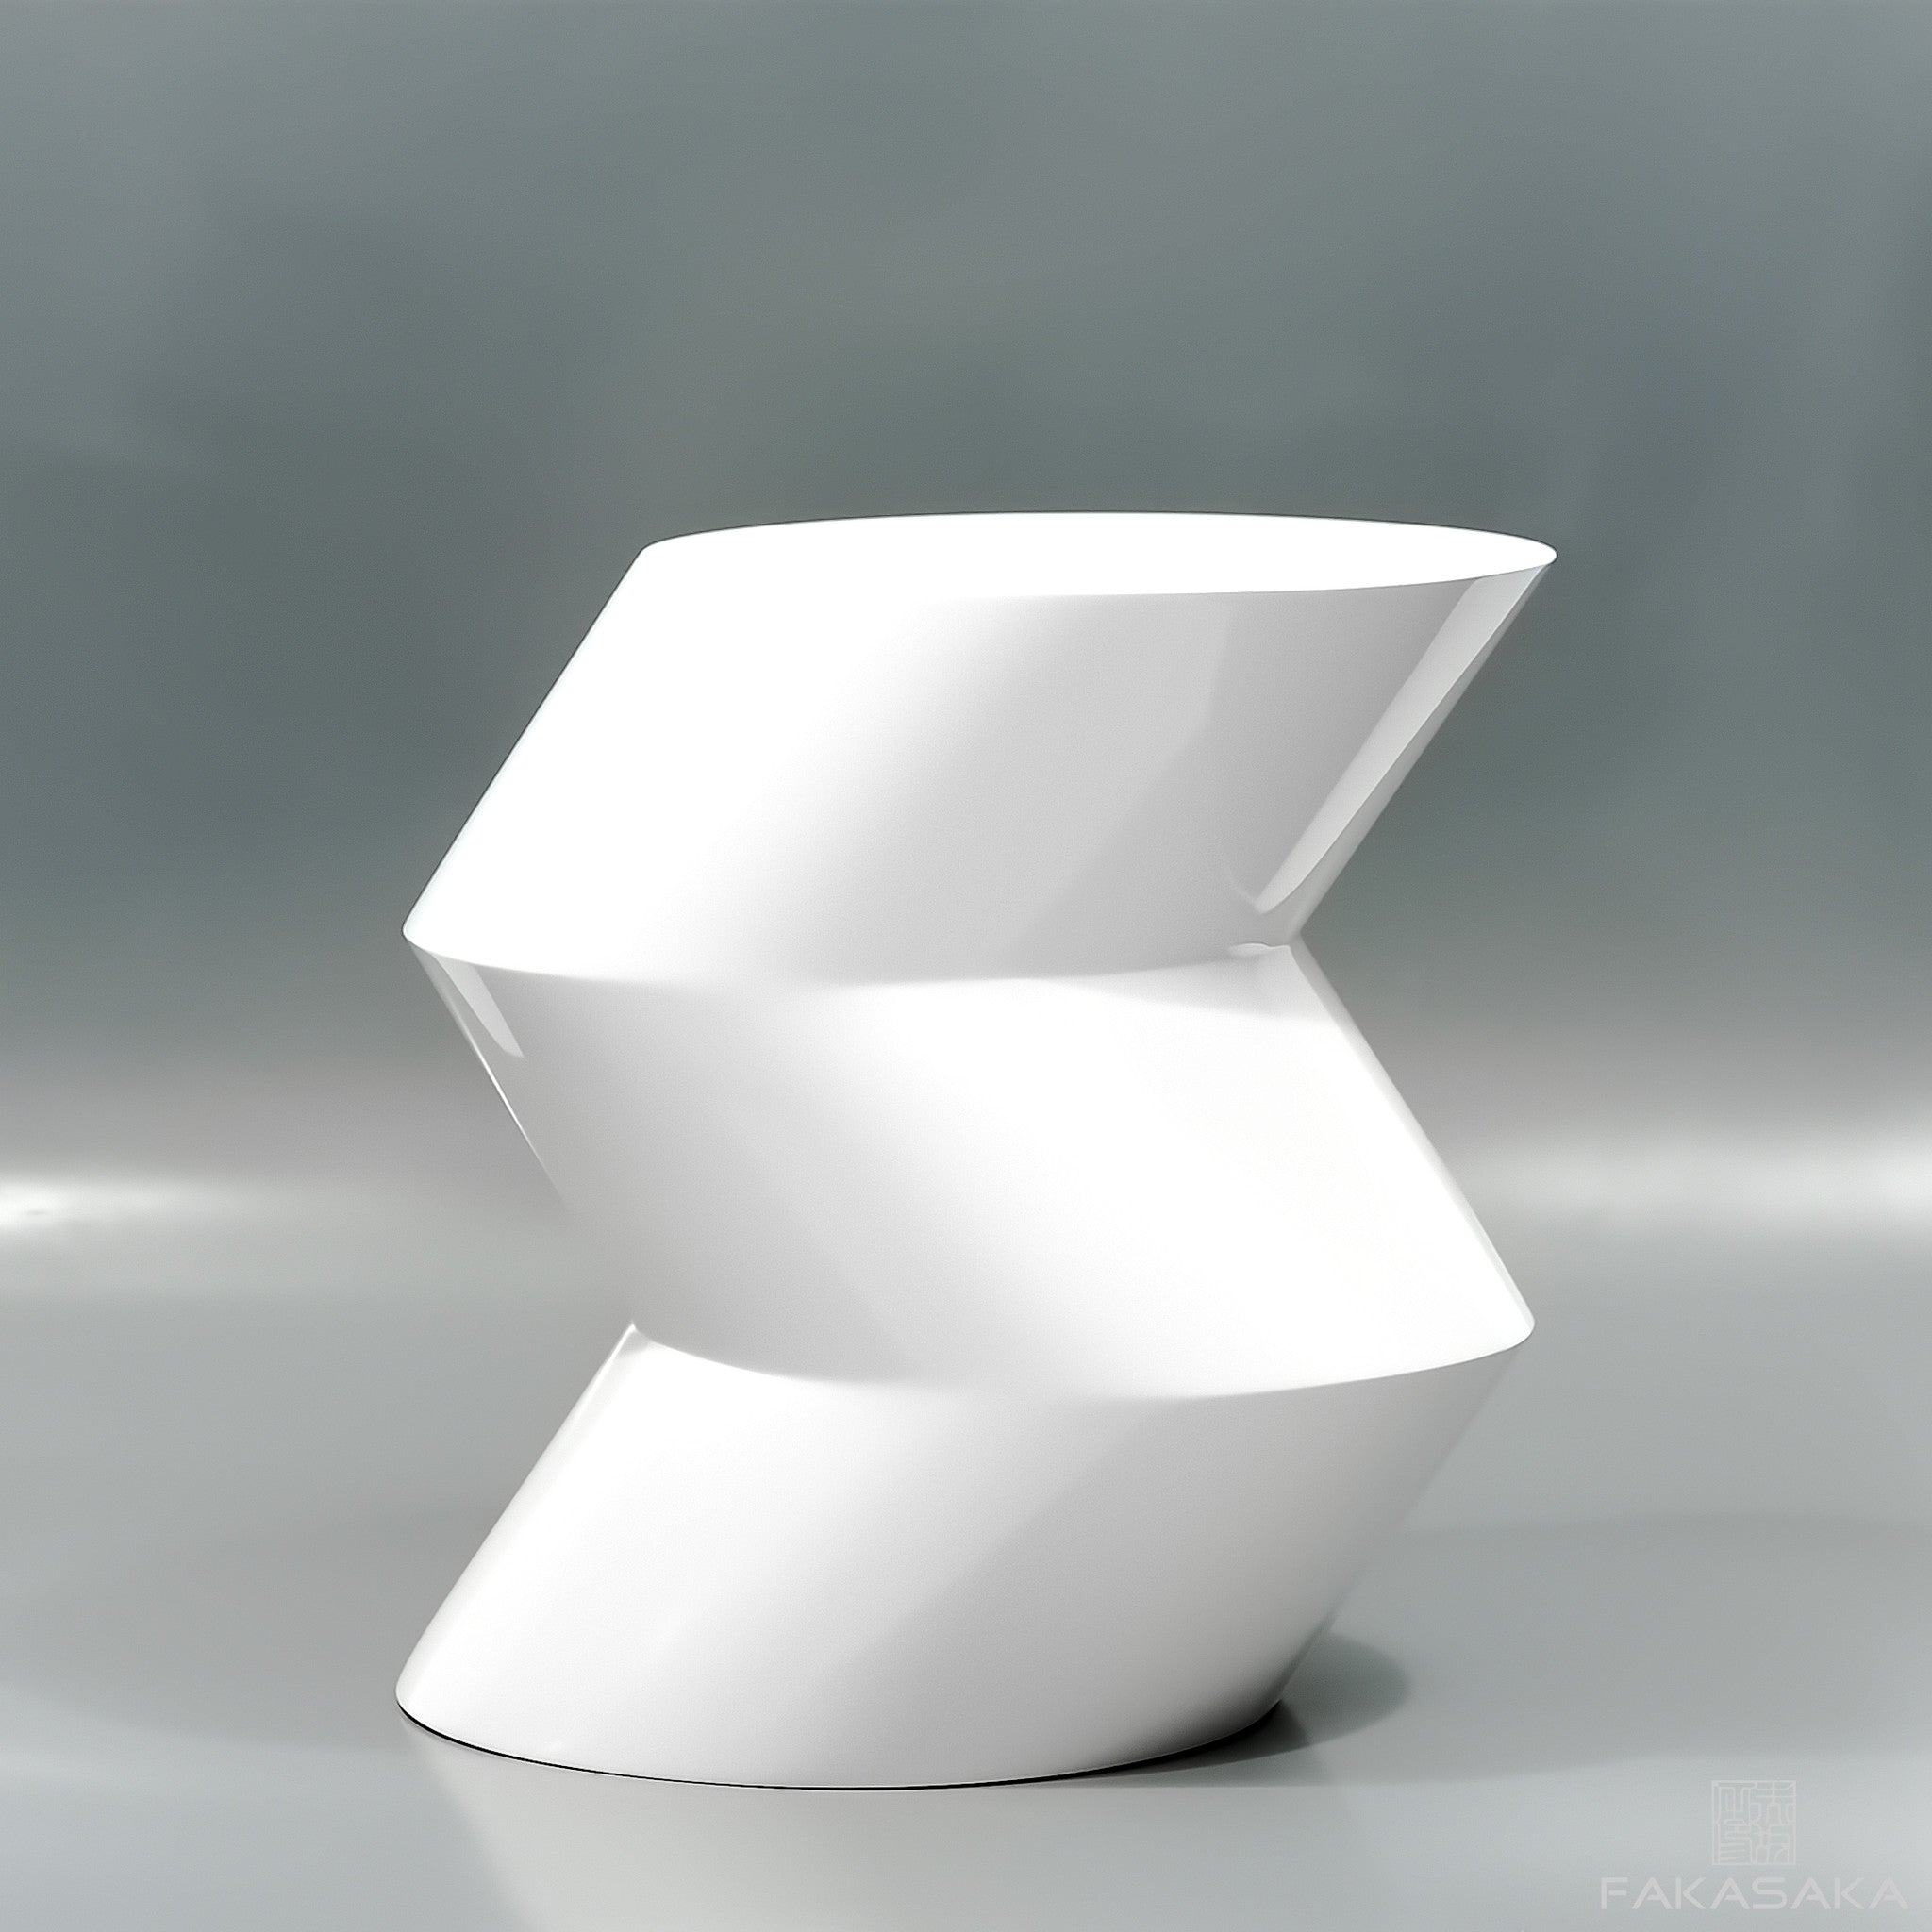 FA10 SIDE TABLE / DRINK TABLE<br><br>LACQUER WHITE